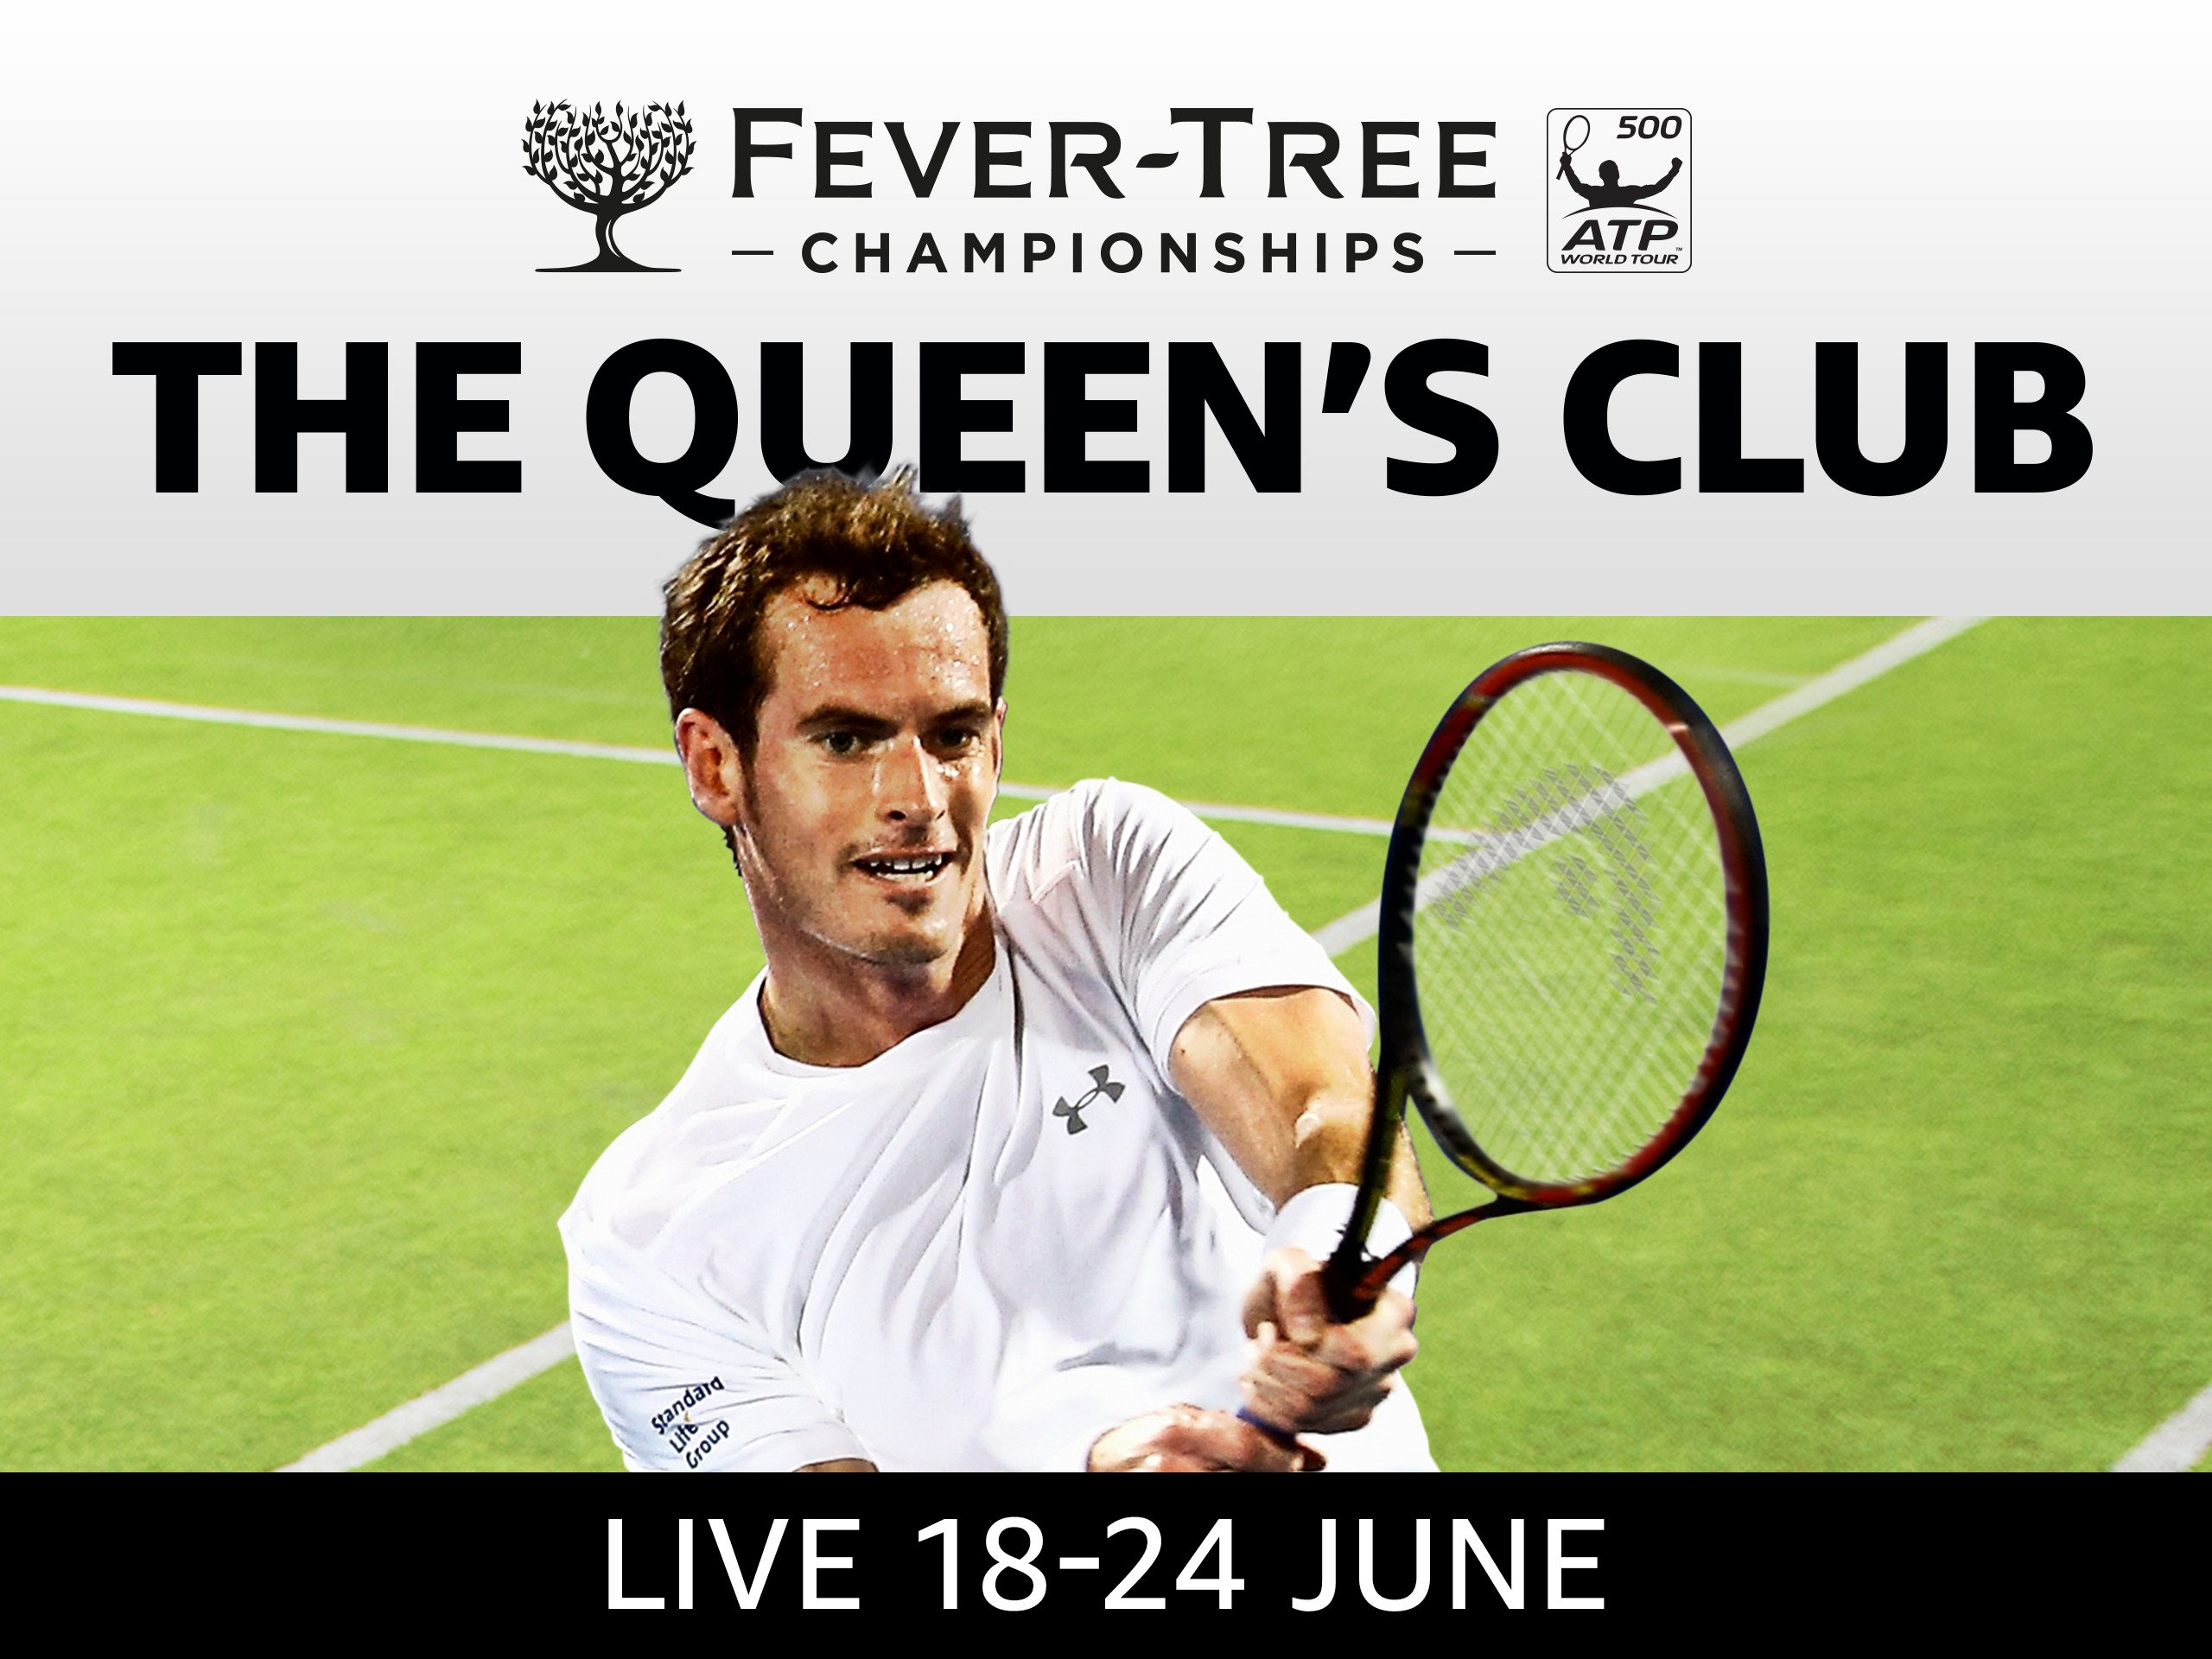 2018 Fever-Tree Championships at The Queen's Club, ATP 500 Event - 2018